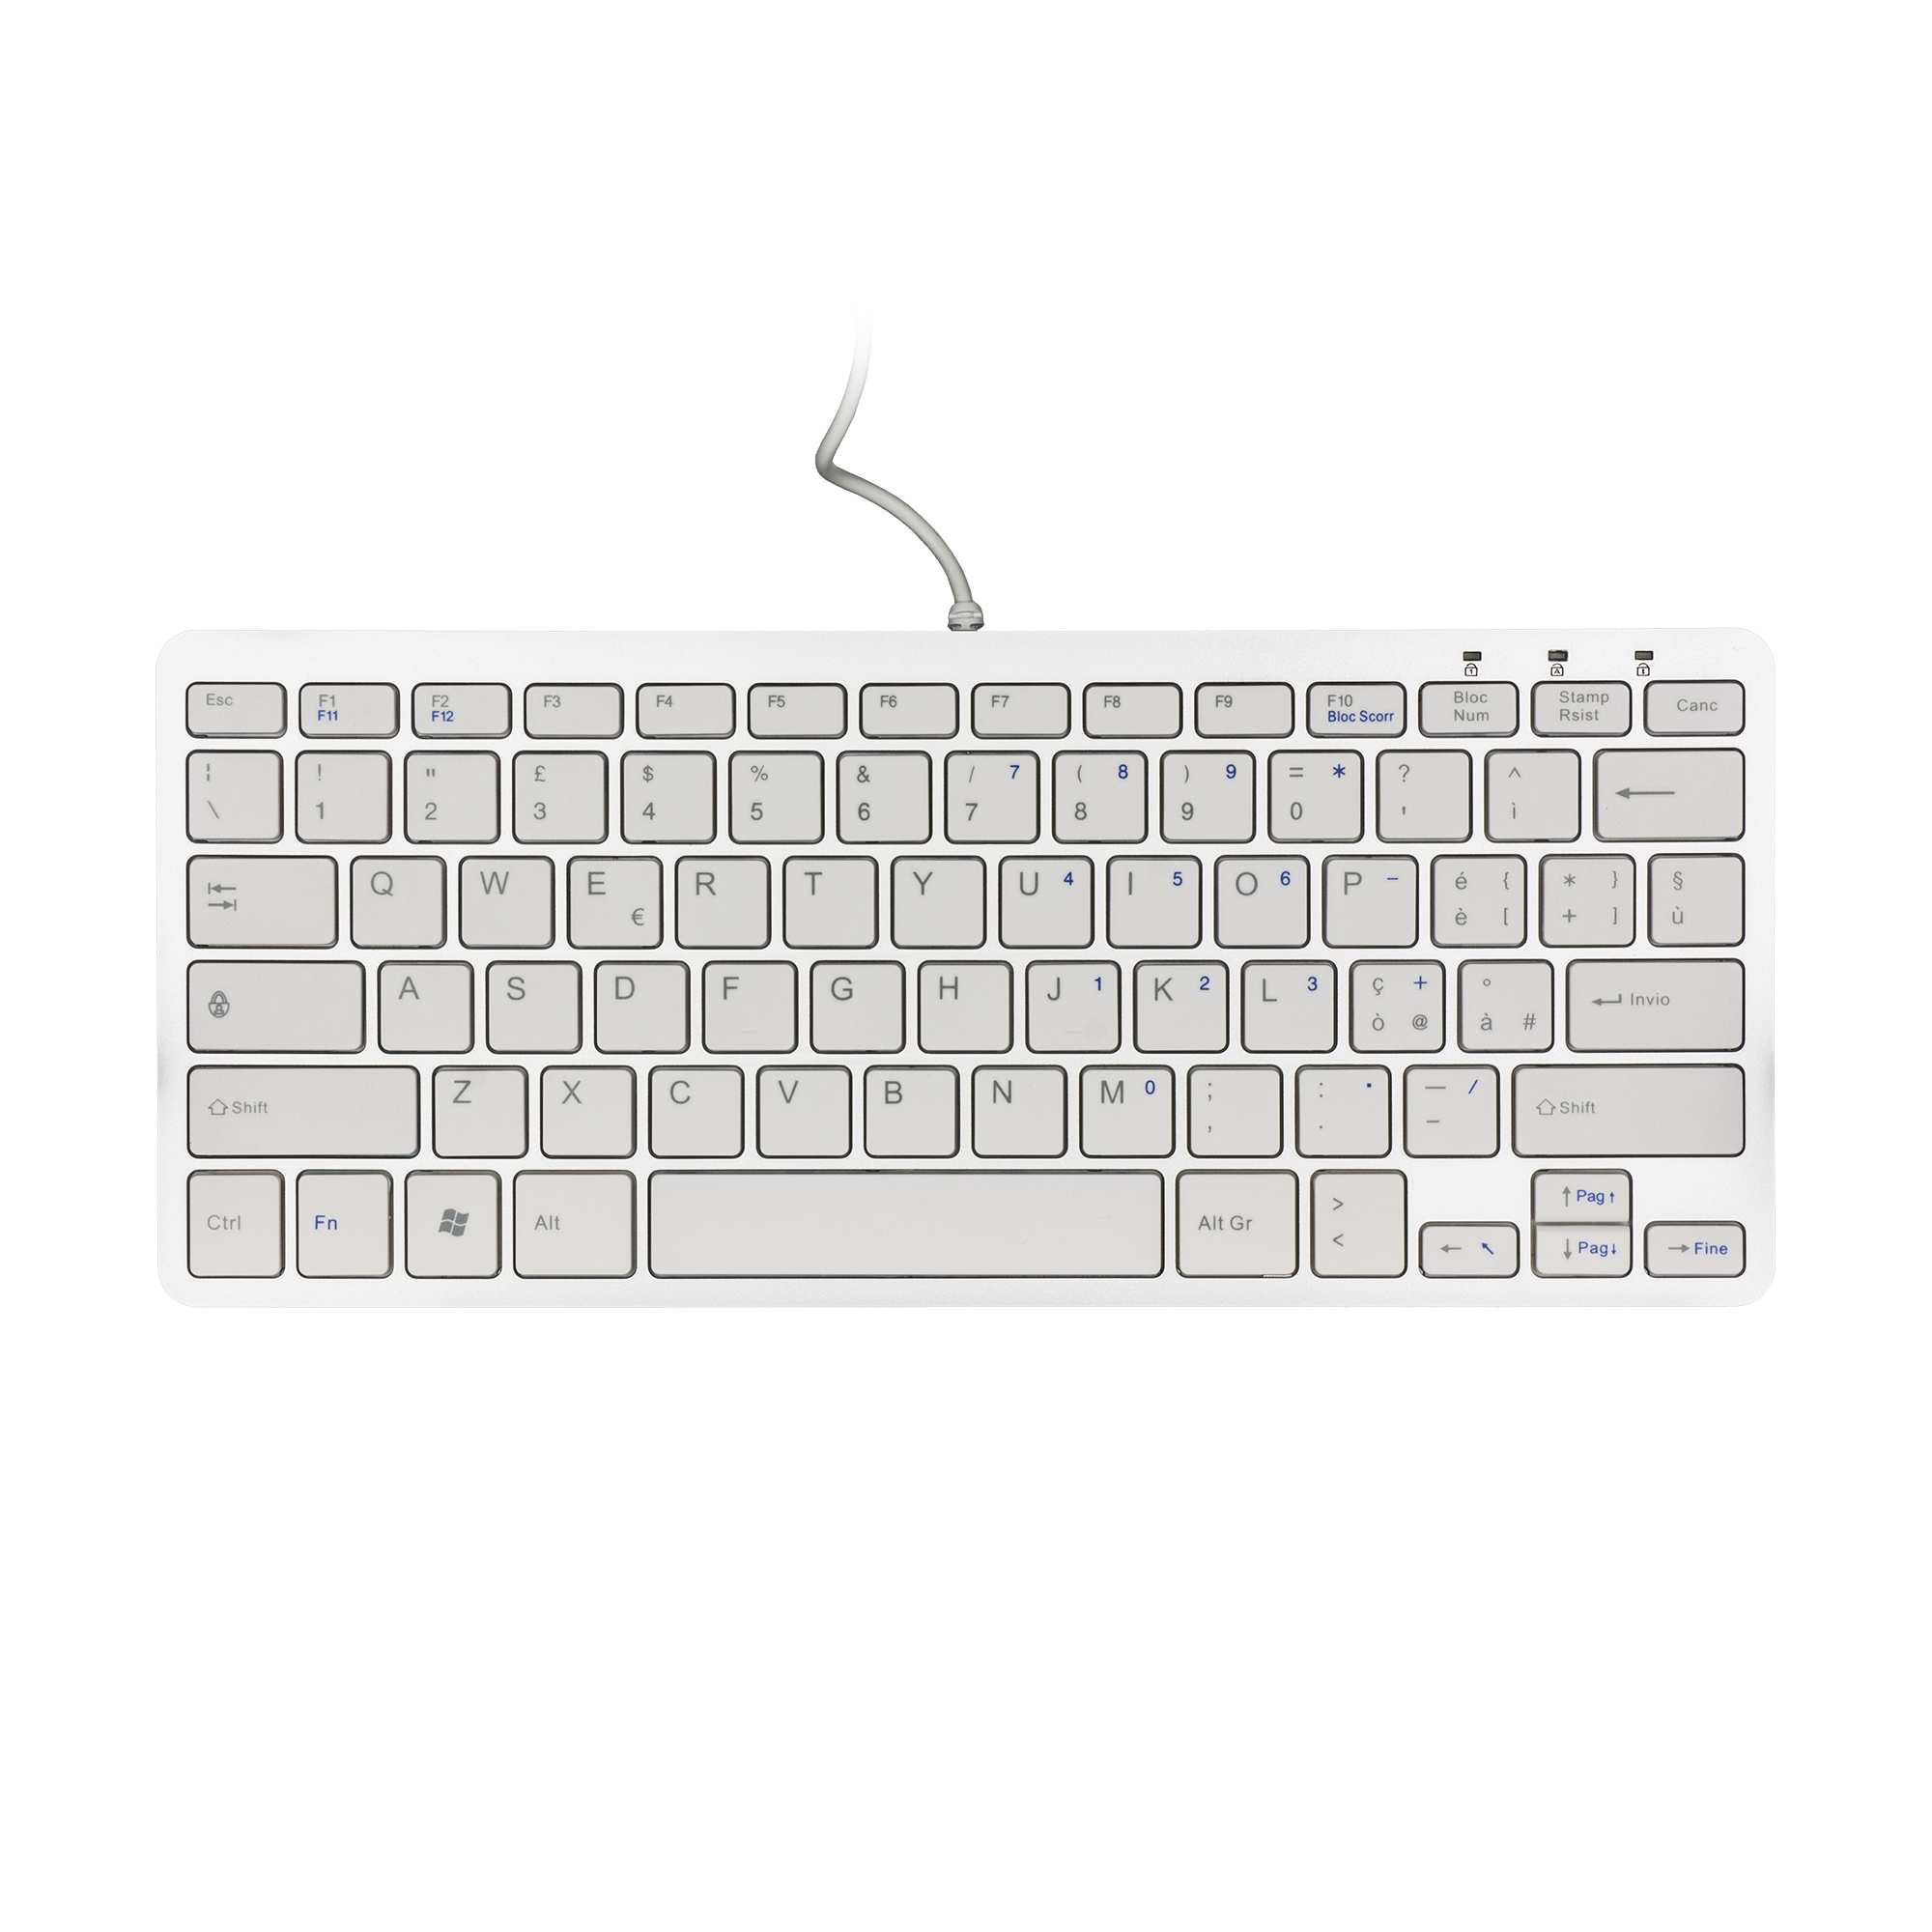 R-GO TOOLS RGOECITAW COMPACT KEYBOARD, QWERTY (IT), WHITE, WIRED